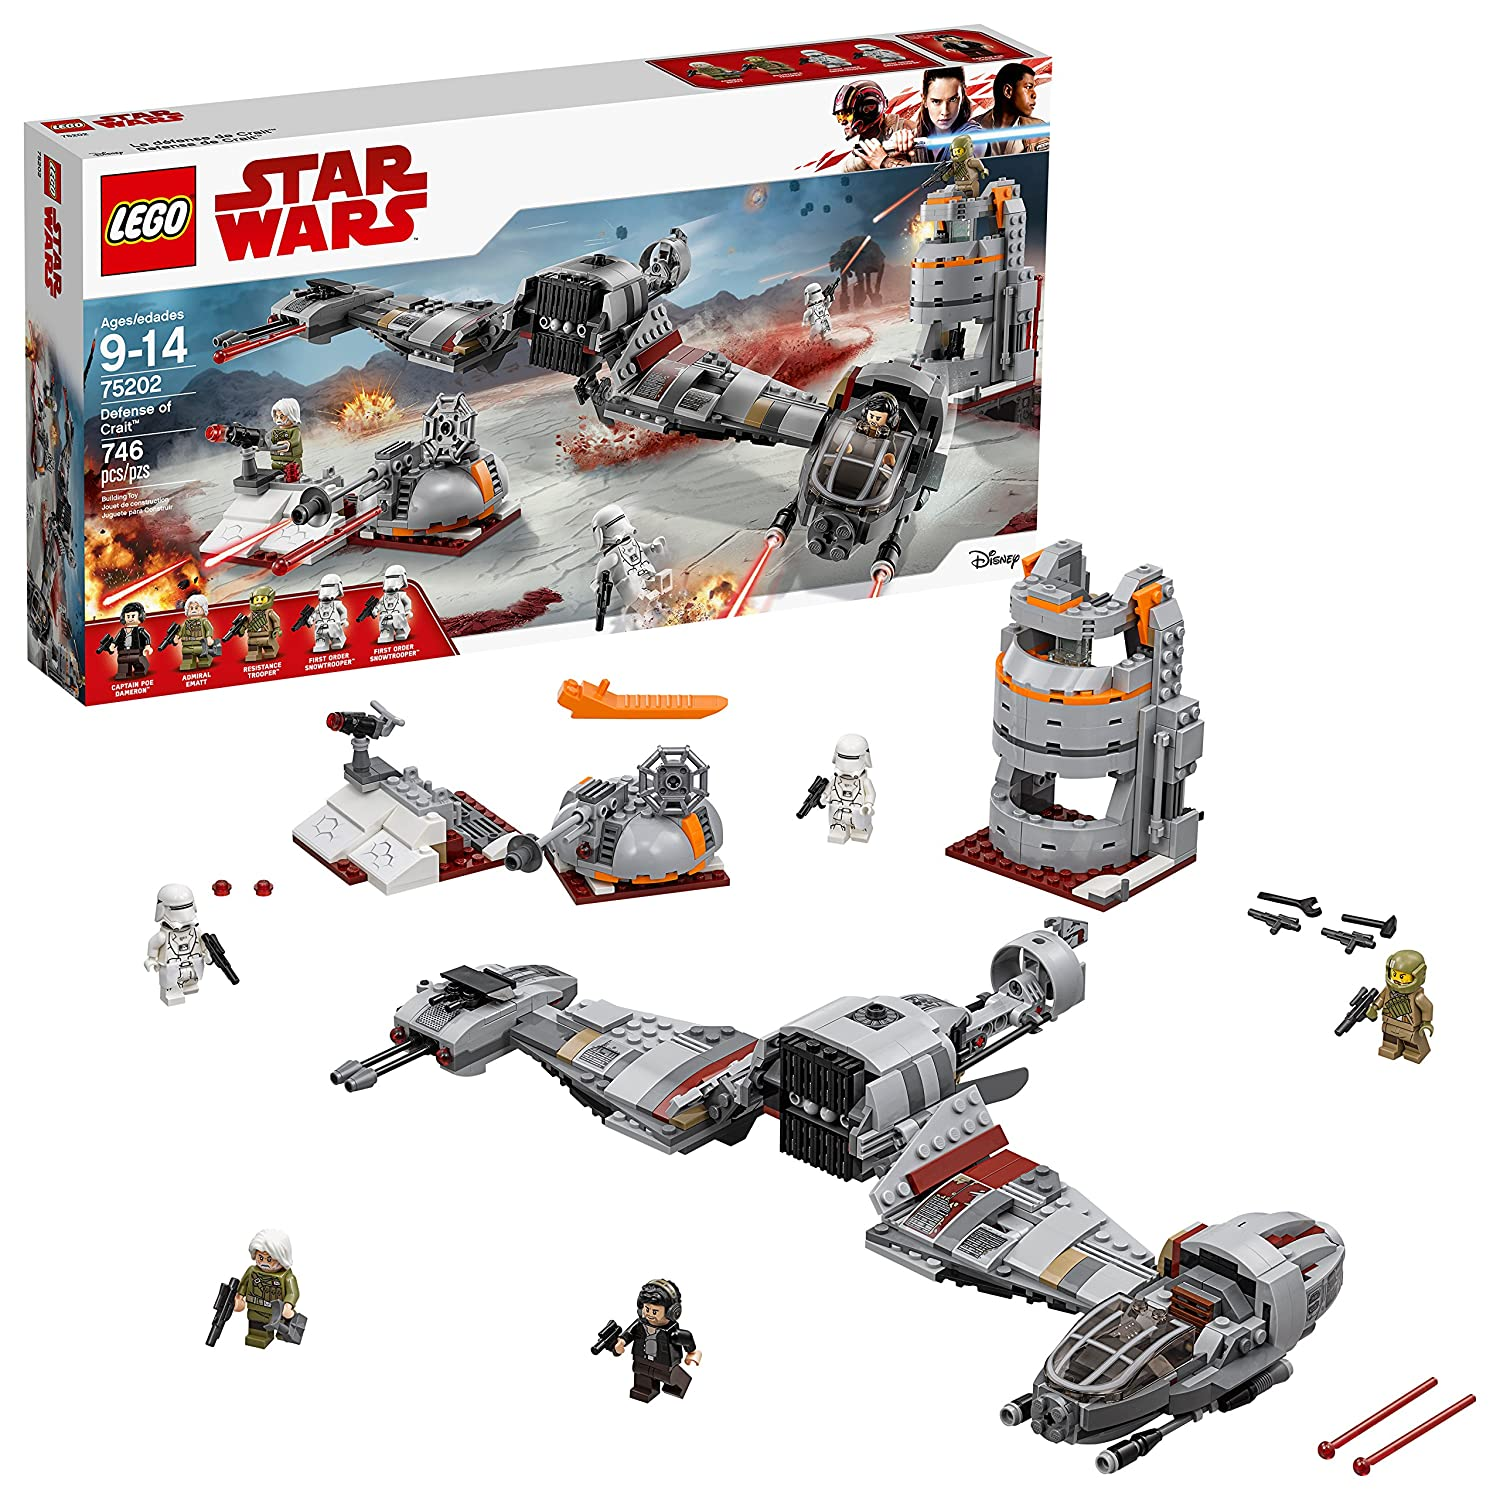 LEGO Star Wars 6212564 Defense of Crait™ 75202 Building Kit (746 Piece)